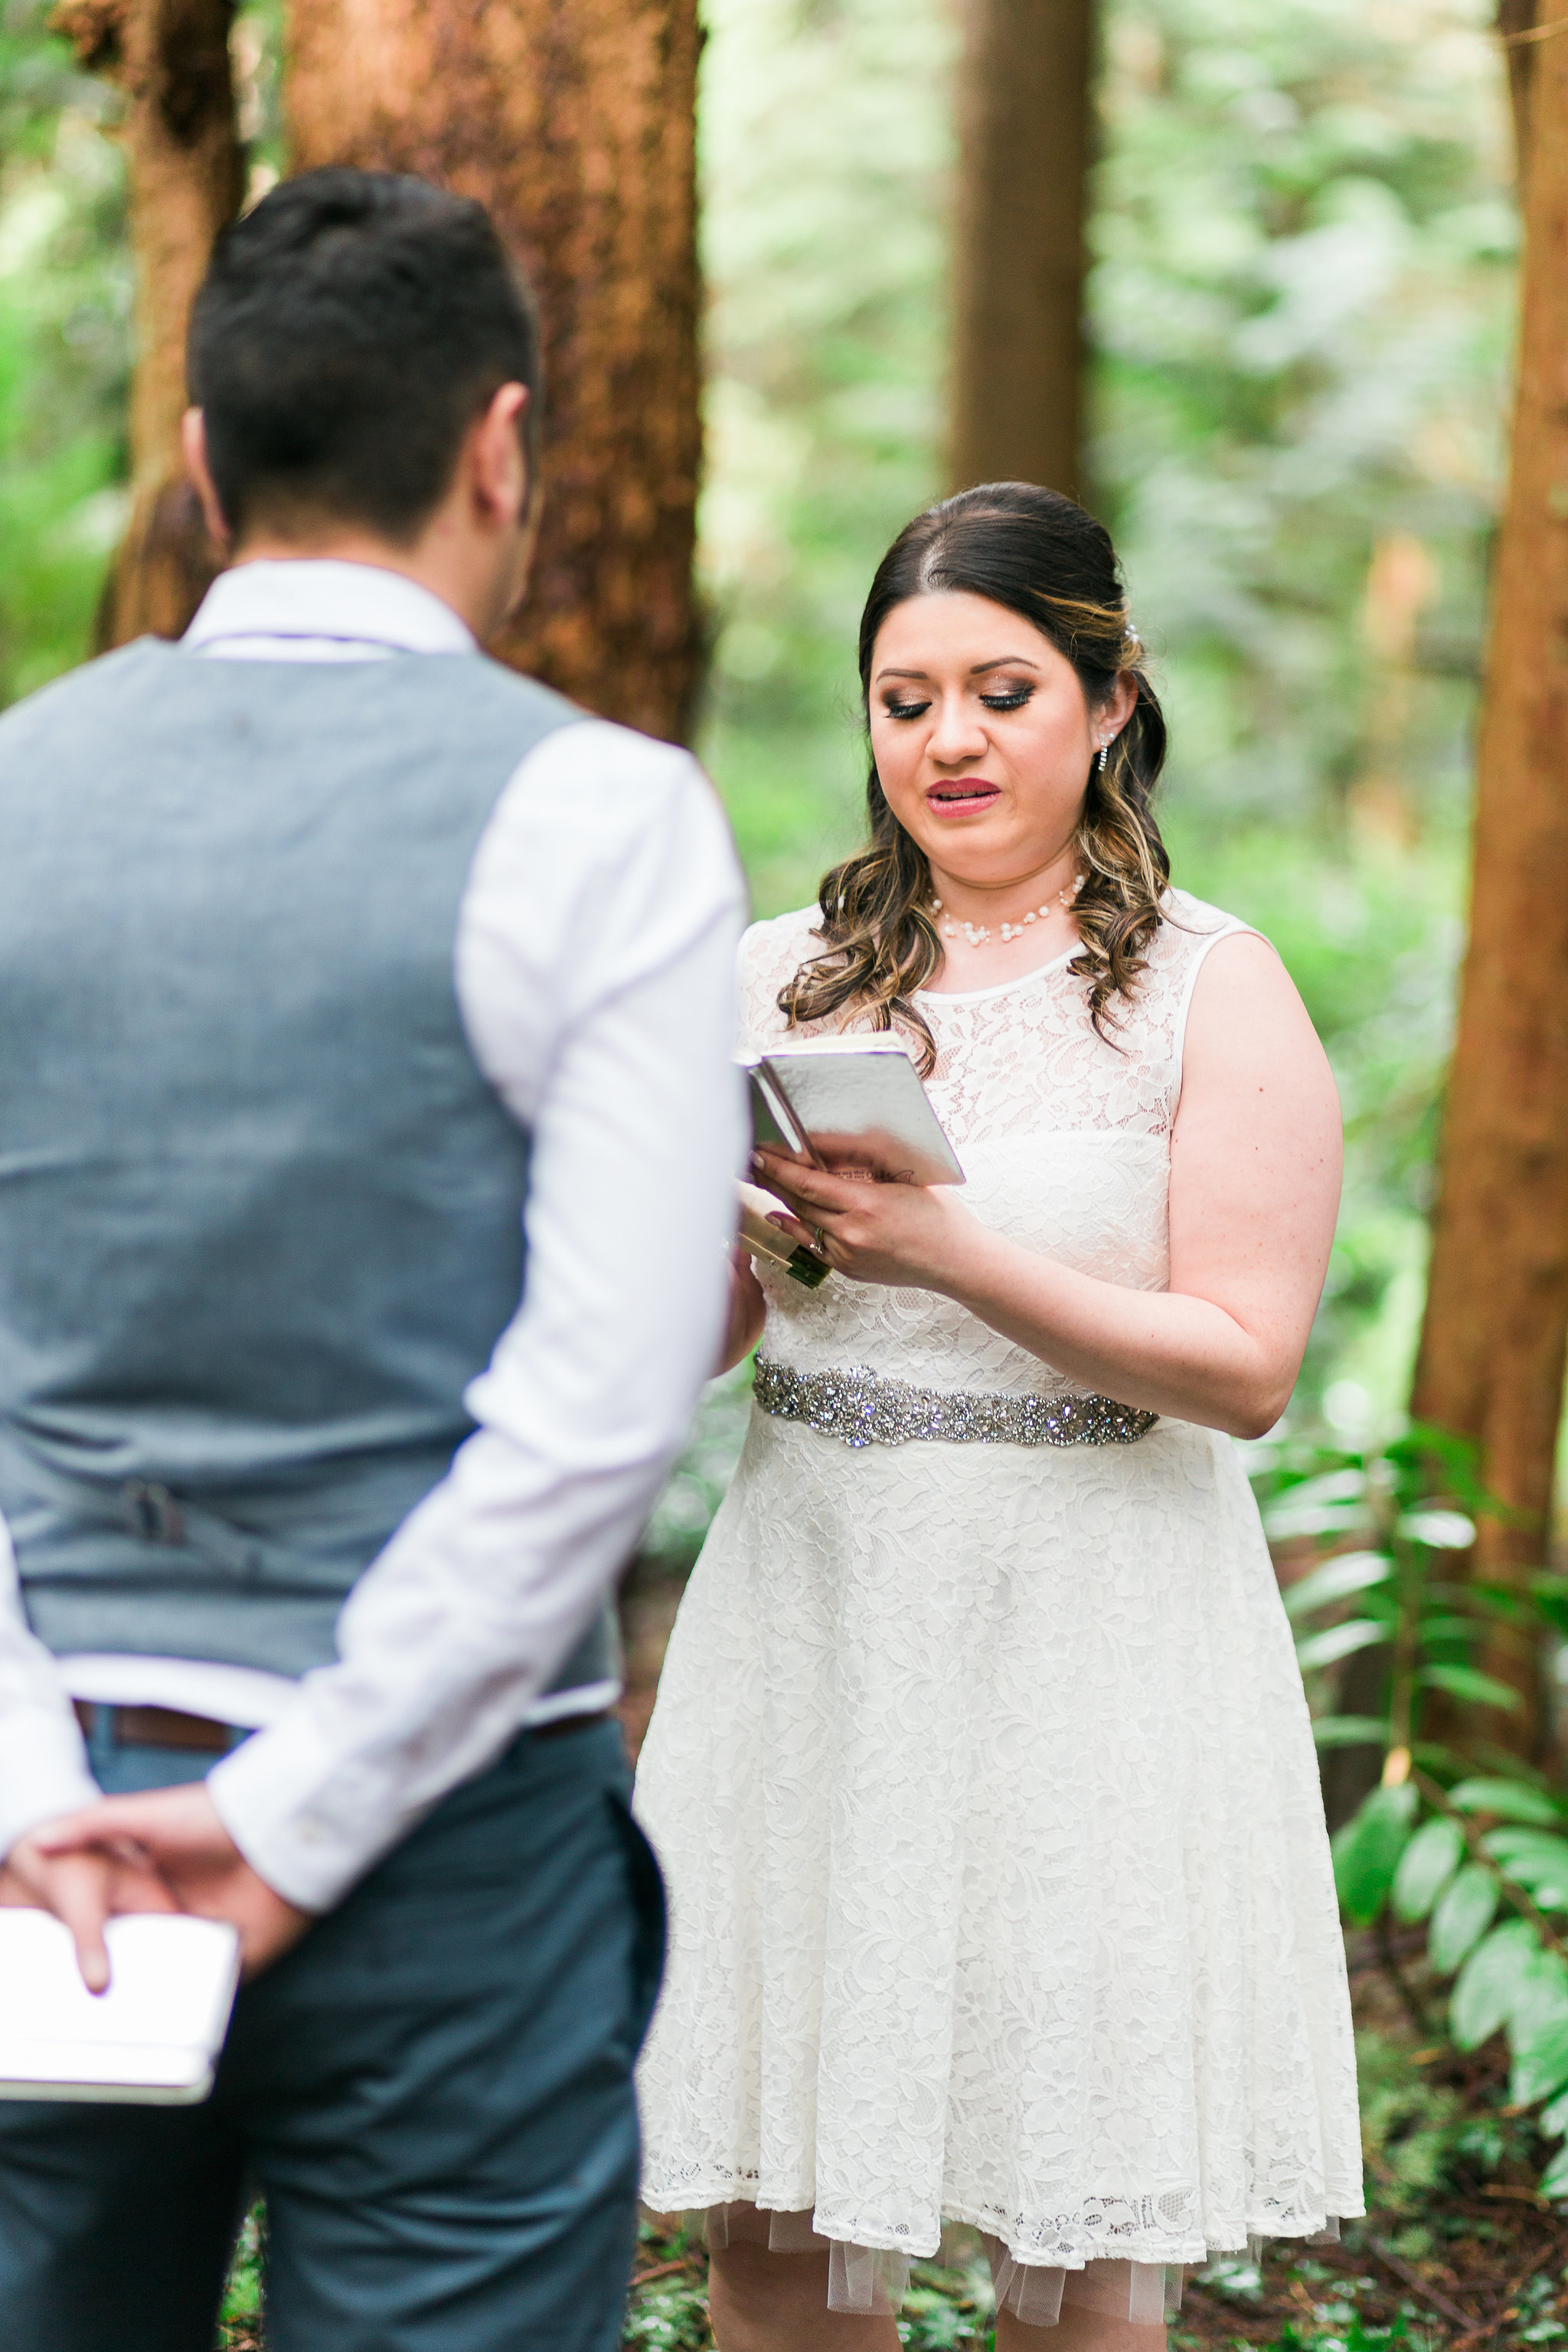 Wedding Ceremony Vow.22 Wedding Vows For Any Ceremony Young Hip Married